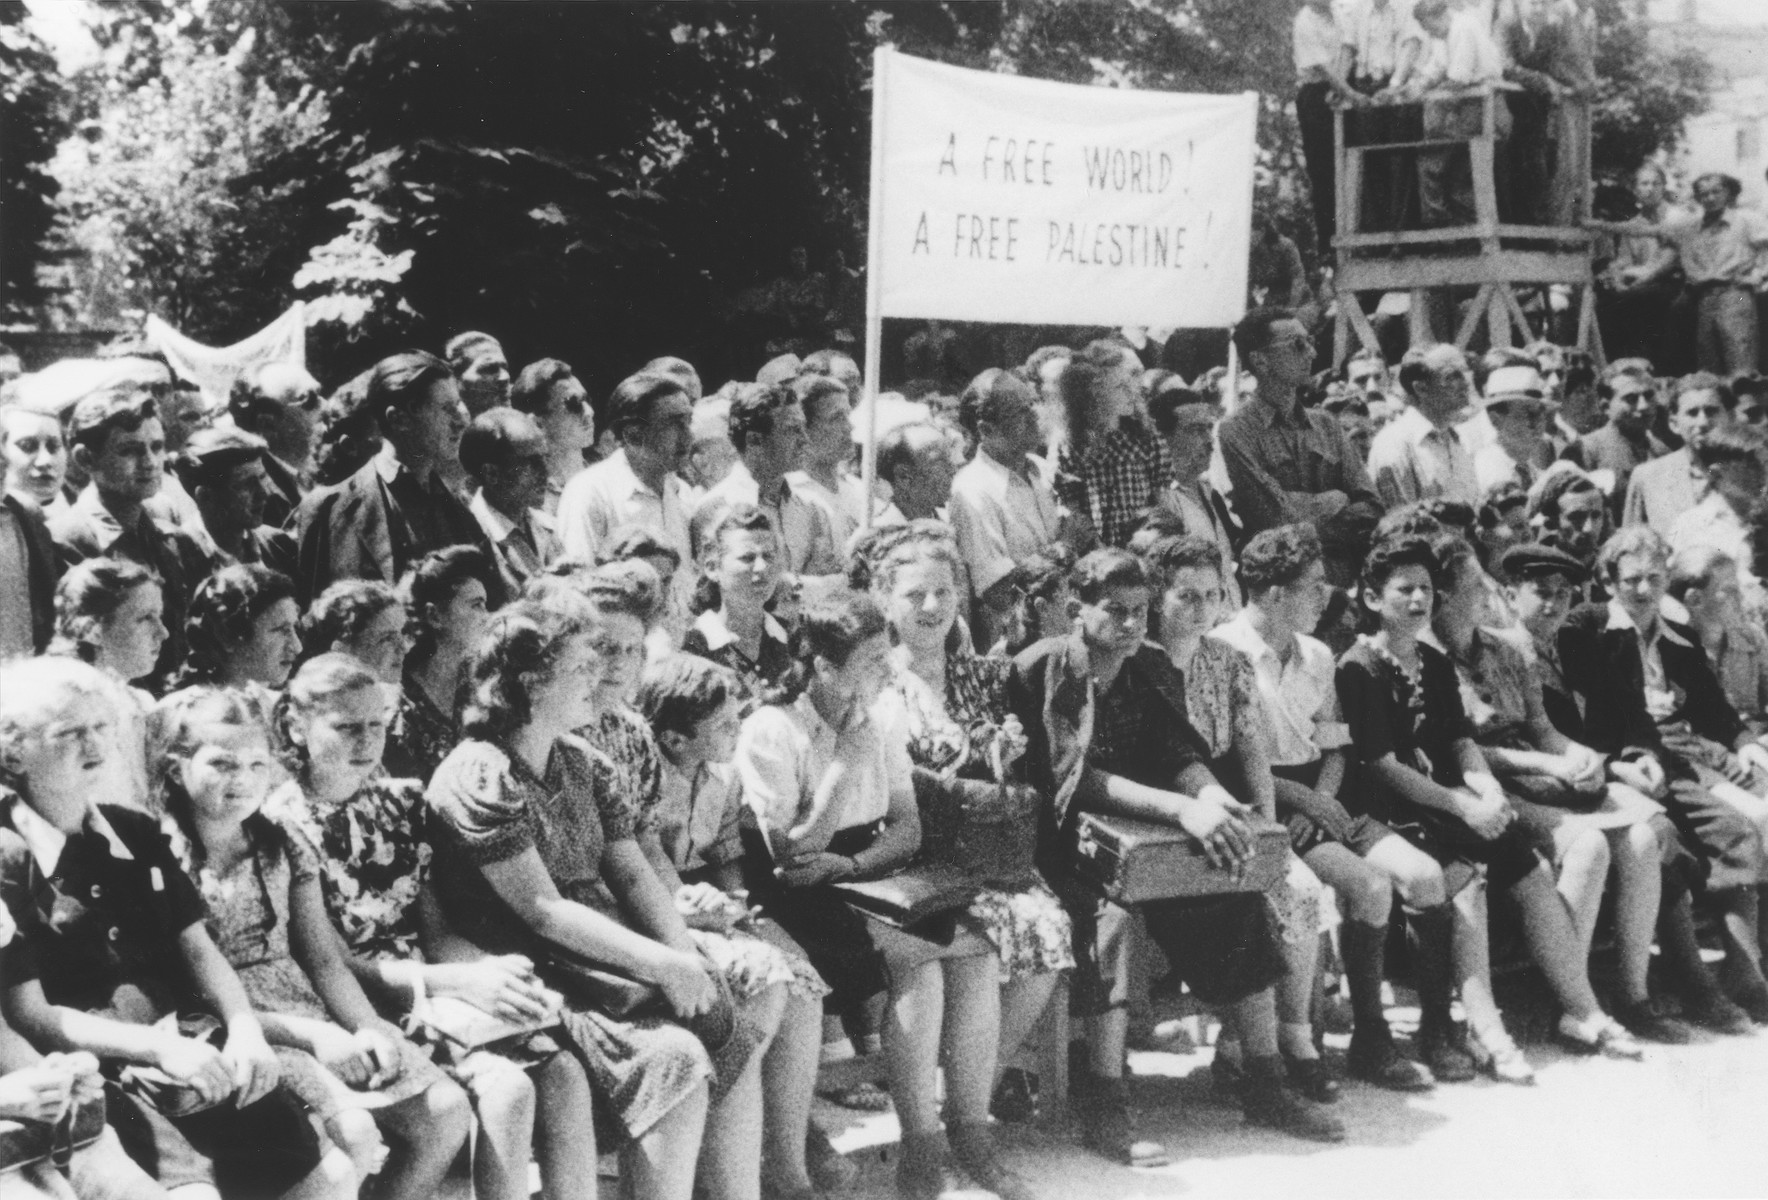 Students at a school for Jewish DPs in Munich, attend a demonstration calling for free immigration to Palestine.  Among those pictured is Ellen Griliches (front row, third from the left).